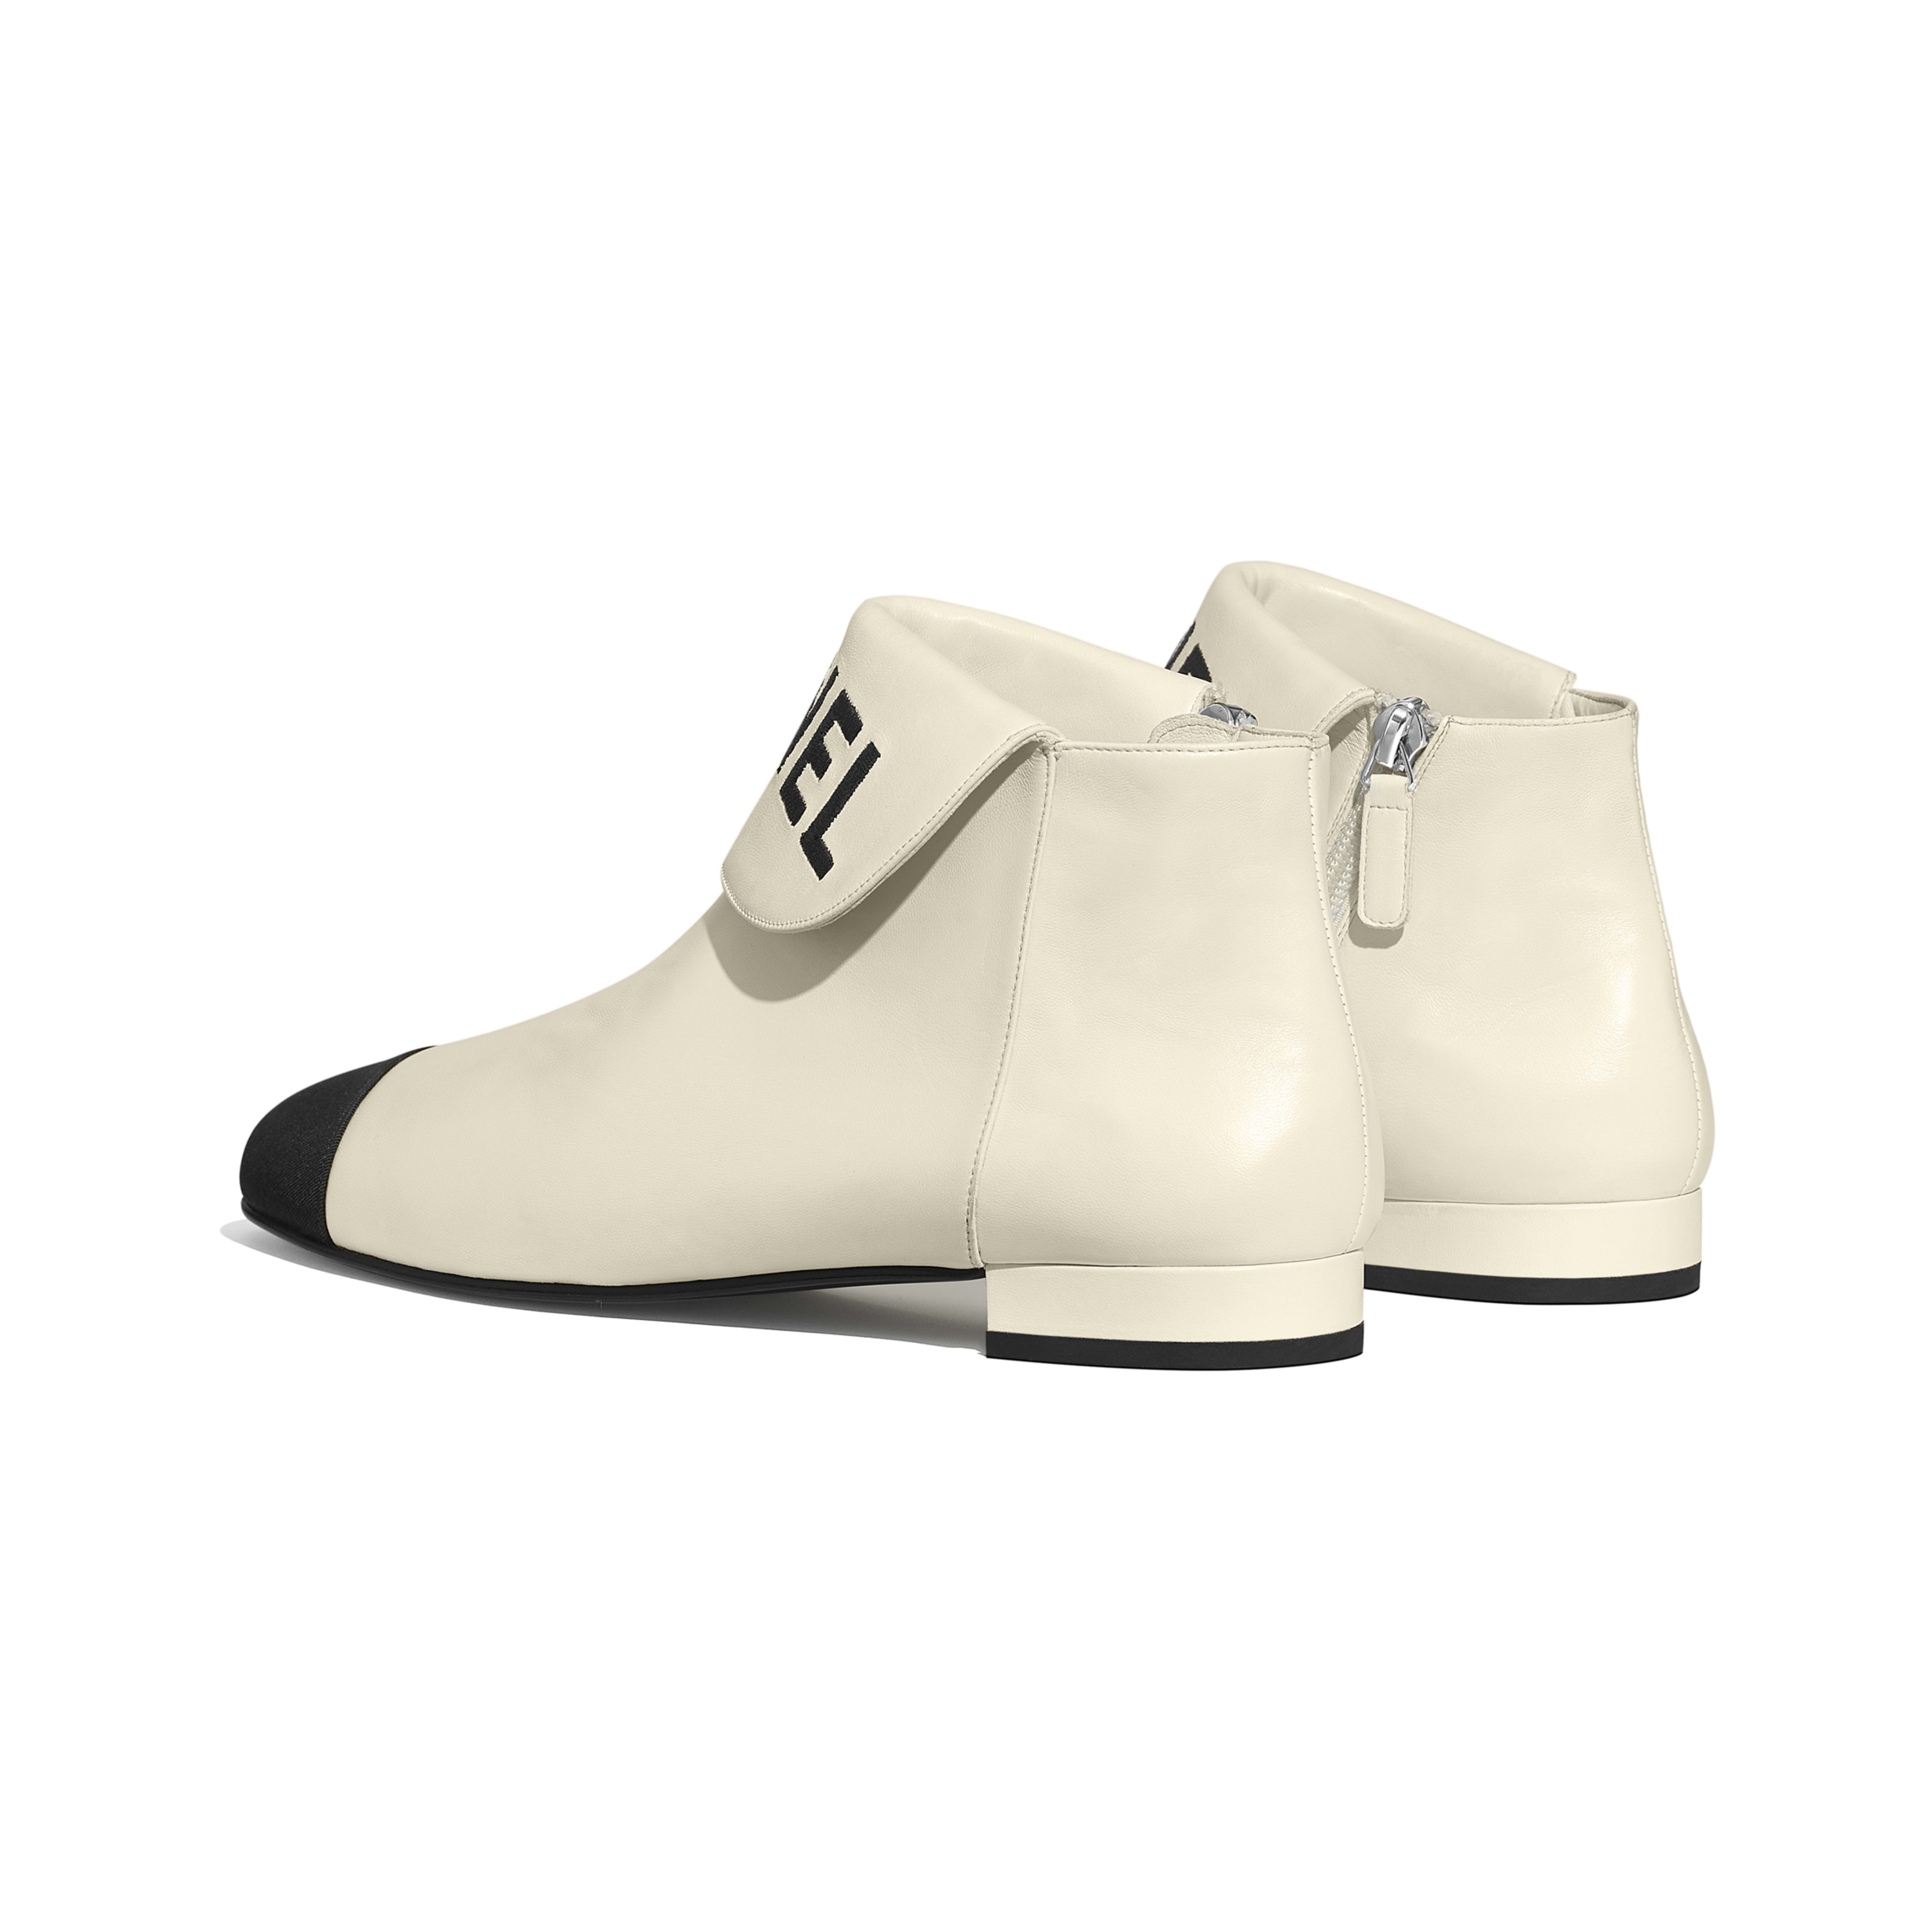 Ankle Boots - Ivory & Black - Lambskin & Grosgrain - Other view - see full sized version